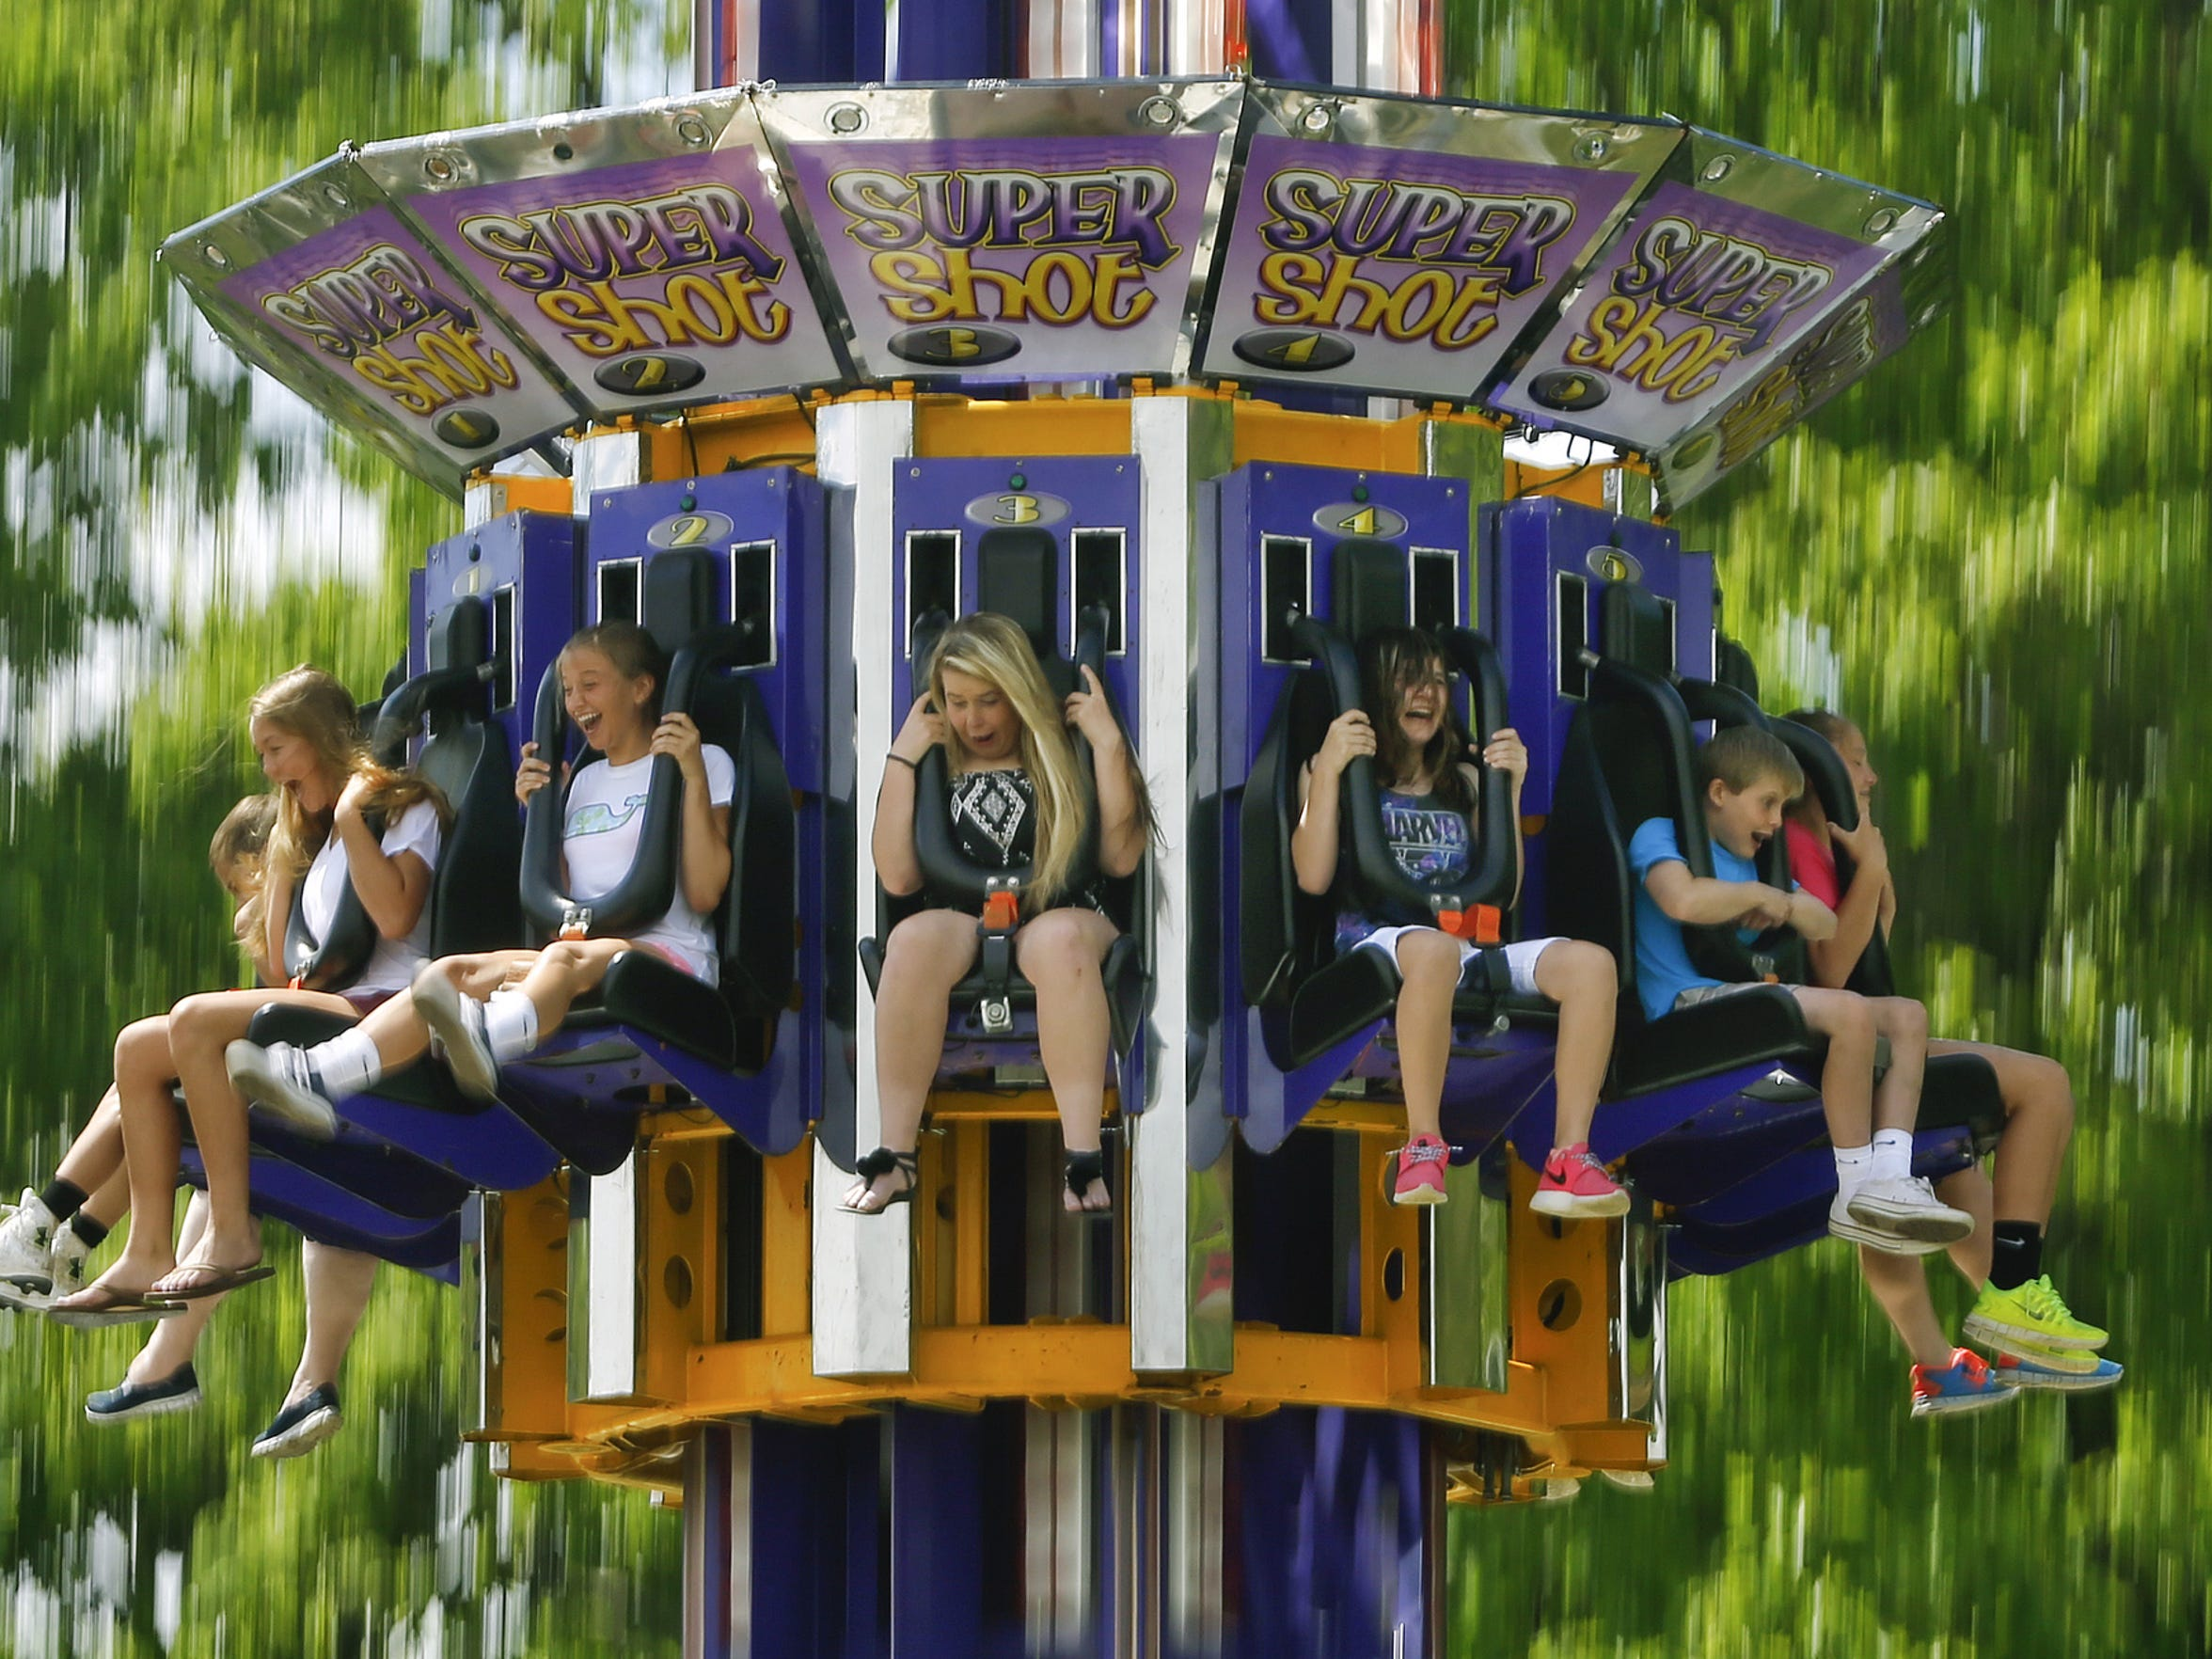 Thrill seekers find what they are looking for on the Super Shot ride during the Wilmington Flower Market in 2015 at Rockford Park.